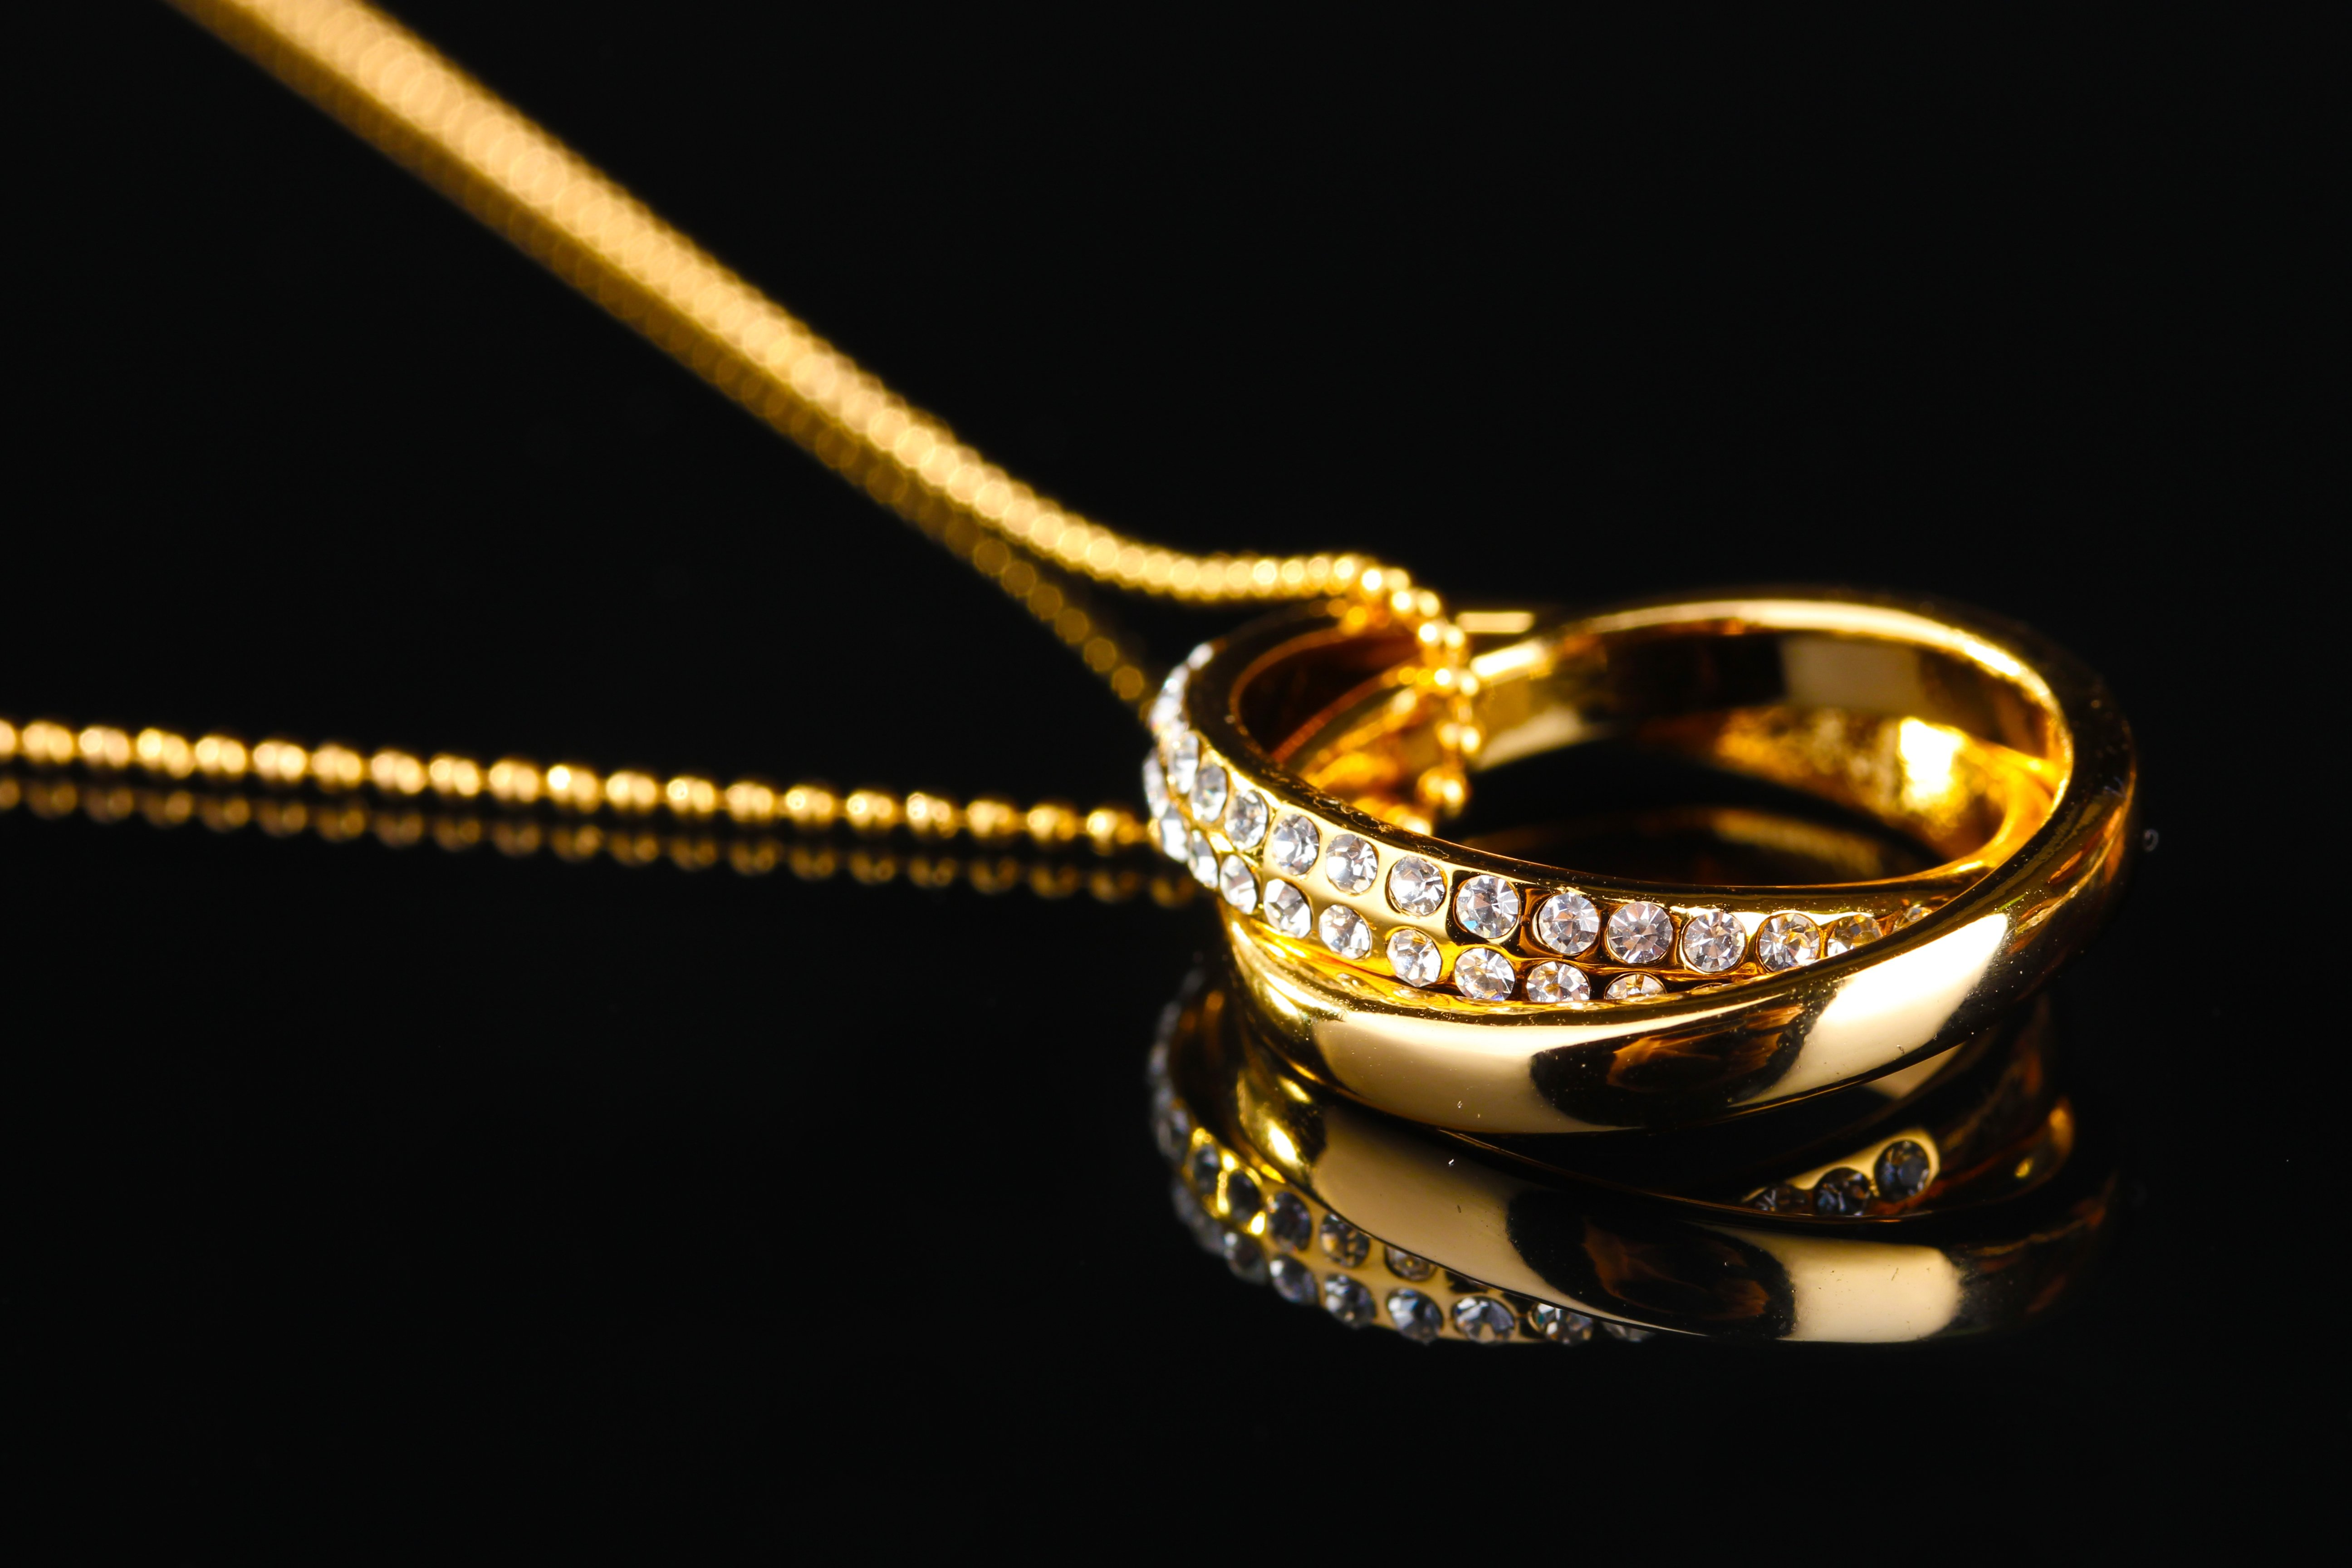 Free Download Top 10 Jewelry Stores In Scottsdale Wallpaper